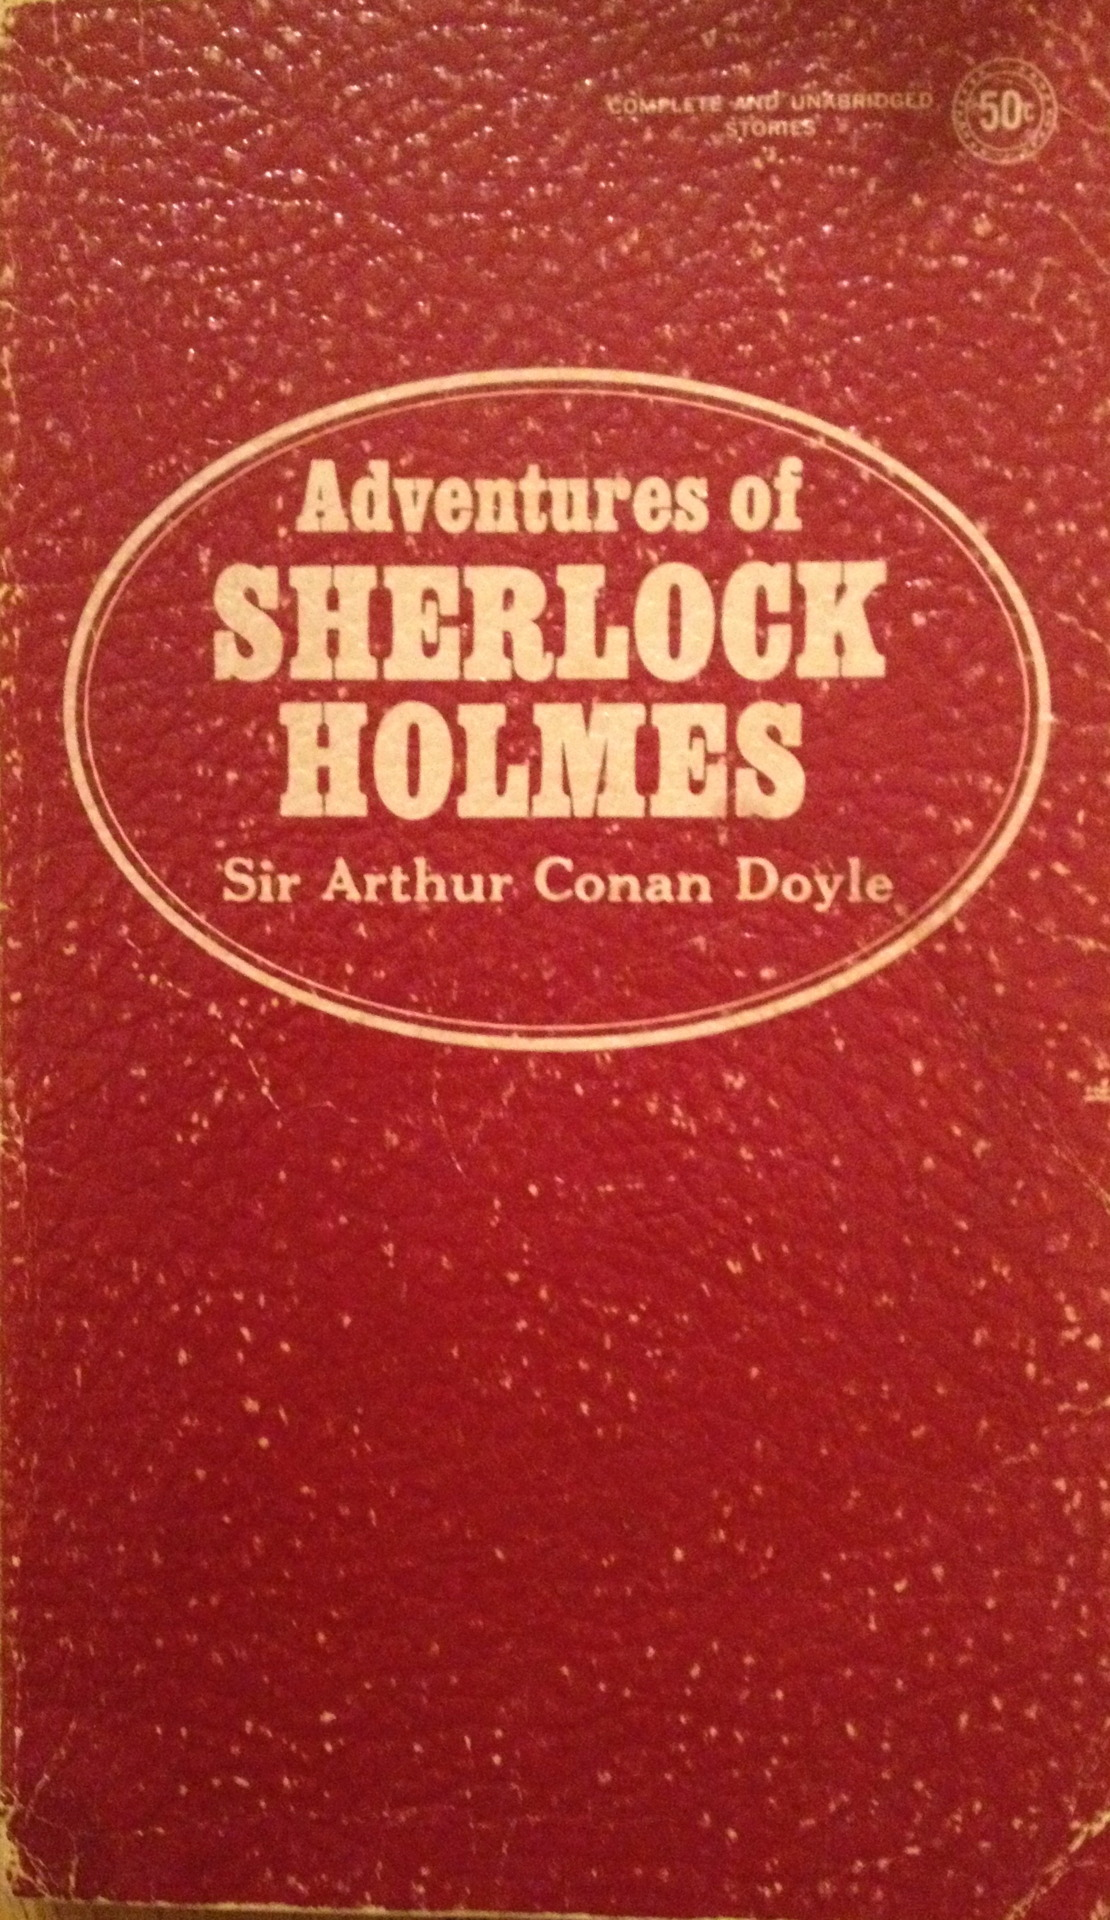 "A recent viewing of the excellent  BBC series ""Sherlock""  sent me hunting my shelves for this softcover pocketbook. This one of the earliest books I owned, perhaps inherited from my father, so it could date to the middle of the 20th Century. It is undated on the copyright page and was published by Award Books Inc. (""Best Seller Classic Series - Specially selected immortal literature, handsomely designed with luxurious, leatherette finish covers. A distinguished addition to all home libraries."")  Unlike  most editions bearing this title,  it contains just seven stories, not 12: ""The Red-Headed League,"" ""The Boxcomber Valley Mystery,"" ""The Five Orange Pips,"" ""The Adventure of the Engineer's Thumb,"" ""The Adventure of the Noble Bachelor,"" ""The Adventure of the Beryl Coronet,"" and ""The Adventure of the Copper Beeches."" For a boy of 10 in 1970s America, this England was an exotic and nearly indecipherable place. I eventually sought out the rest (many of them better than the ones in this anthology) as well as many pastiches and inspired knockoffs {""The 7 Percent Solution"" was an early favorite, with Sigmund Freud treating Holmes). The BBC series transforms Watson into a blogger, a masterstroke. You could well imagine him typing this opener to ""Five Orange Pips"" into Tumblr…  ""When I glance over my notes and records of the Sherlock Holmes cases between the years '82 and '90, I am faced by so many which present strange and interesting features that it is no easy matter to know which to choose and which to leave. Some, however, have already gained publicity through the papers, and others have not offered a field for those peculiar qualities which my friend possessed in so high a degree, and which it is the object of these papers to illustrate. Some, too have baffled his analytical skill, and would be, as narratives, beginnings without an ending, while others have been but partially cleared up, and have their explanation founded rather upon conjecture and surmise than on that absolute logical proof which was so dear to him. There is, however, one of these last which was so remarkable in its details and so startling in its results that I am tempted to give some account of it…""   [Originally posted on my discontinued This Old Book Tumblr.]"